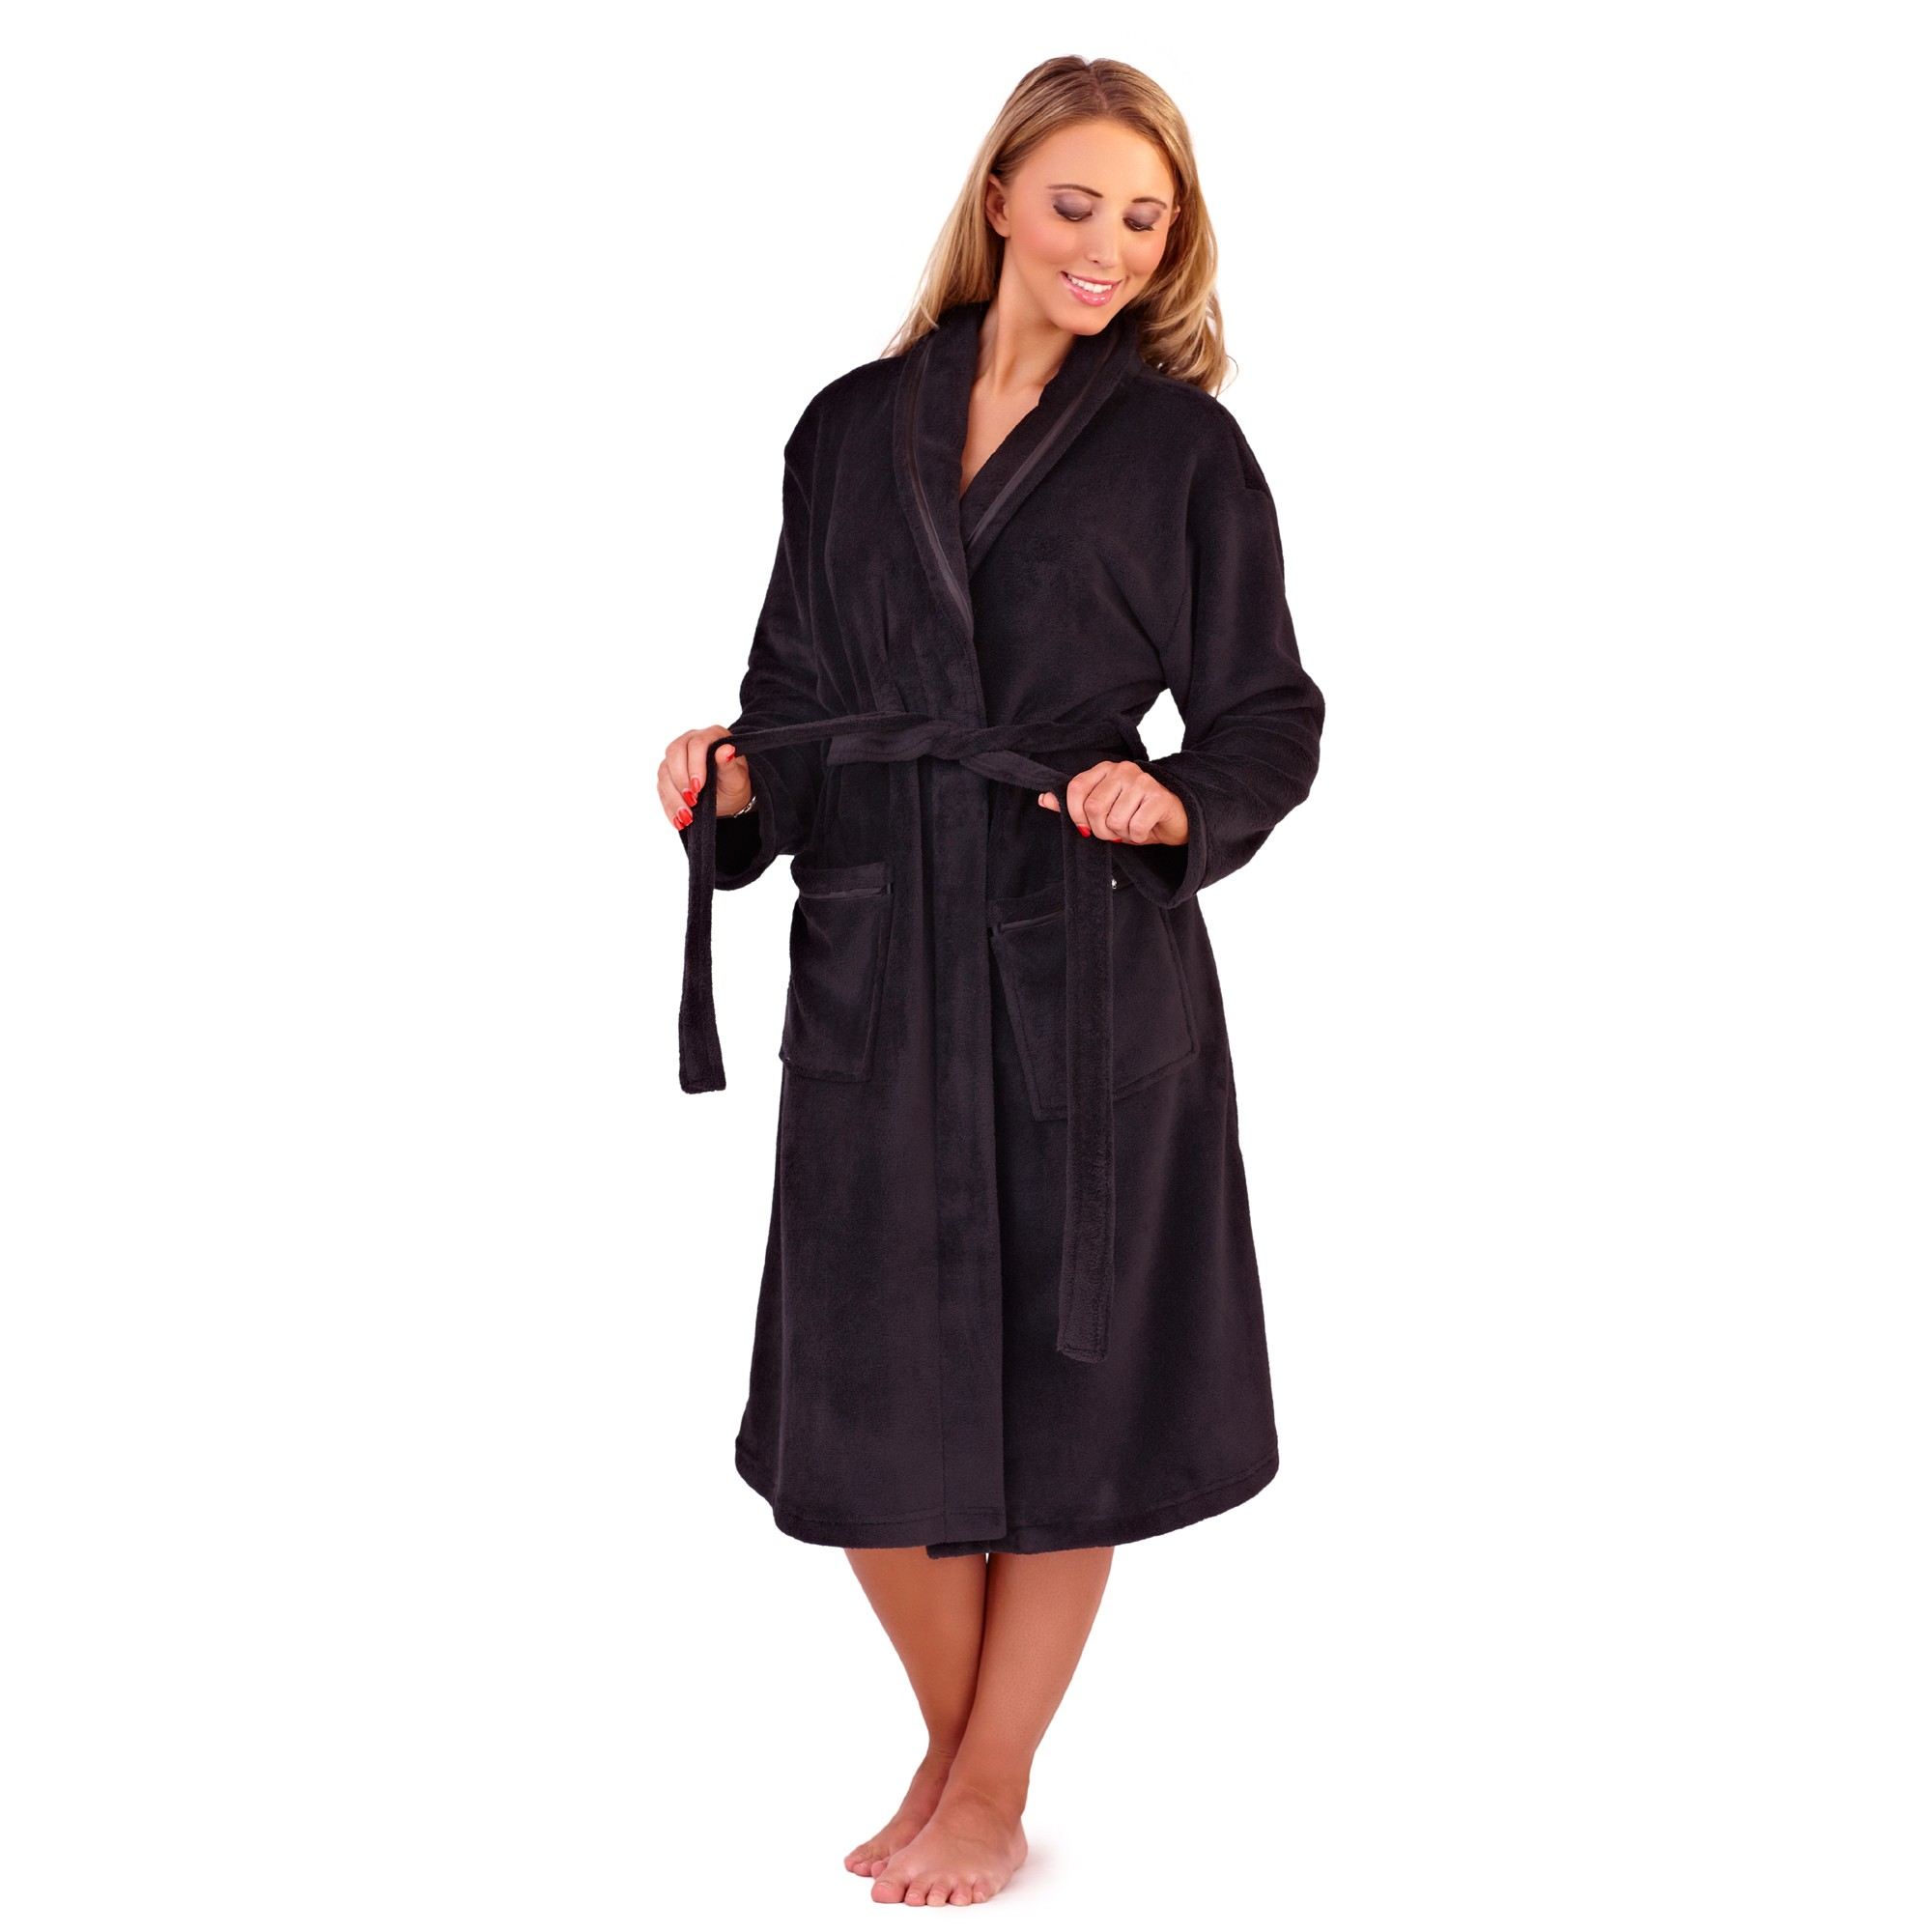 Ladies Super Soft Fleece Dressing Gown - Black